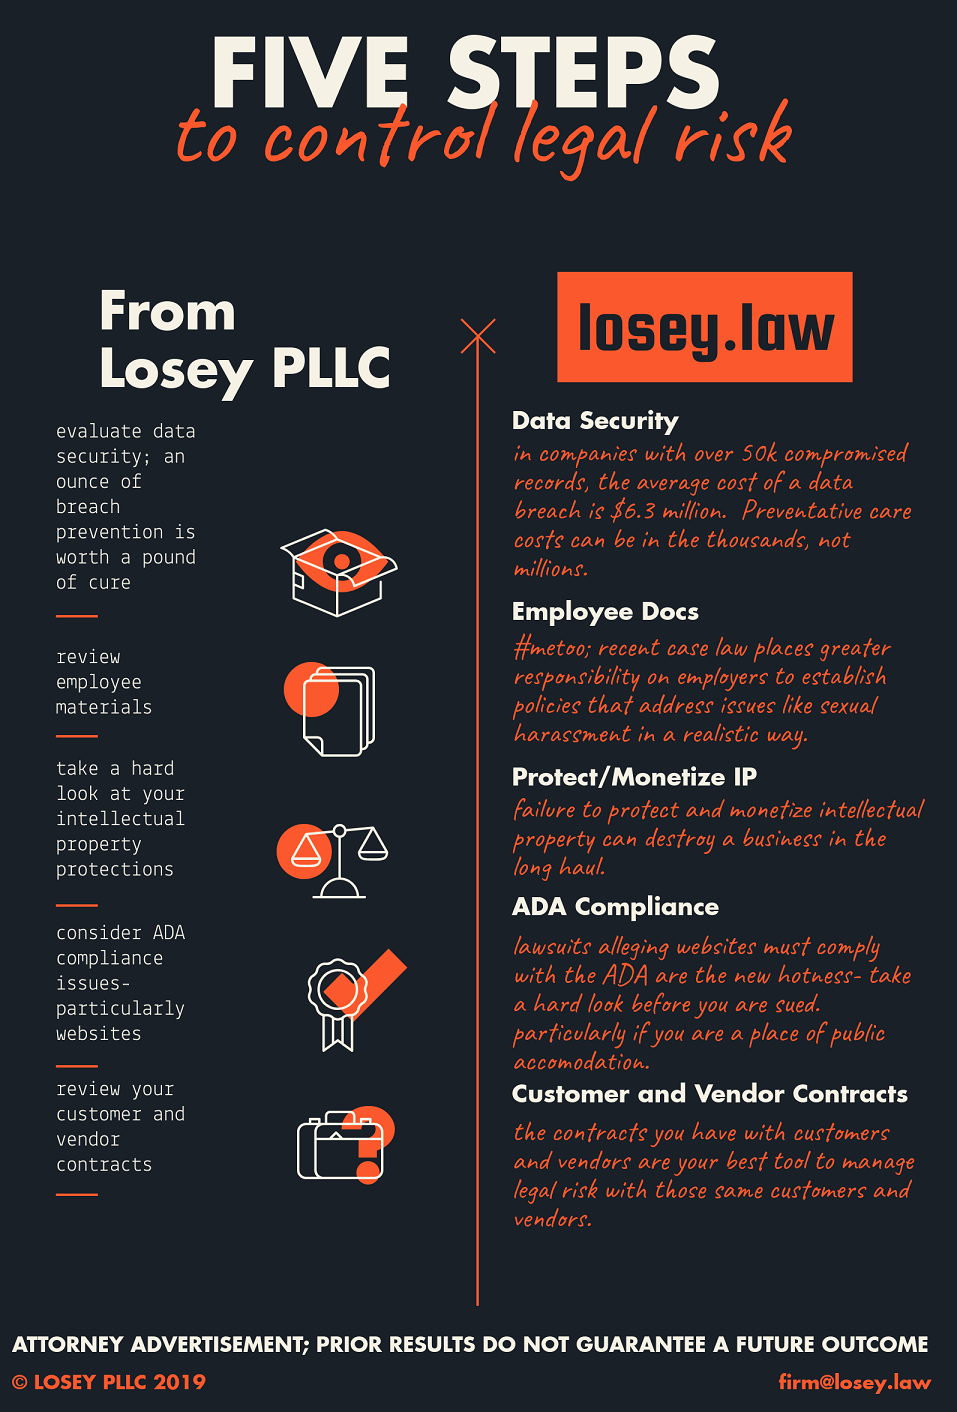 Losey PLLC Controlling Legal Risk Infographic 2.10.19